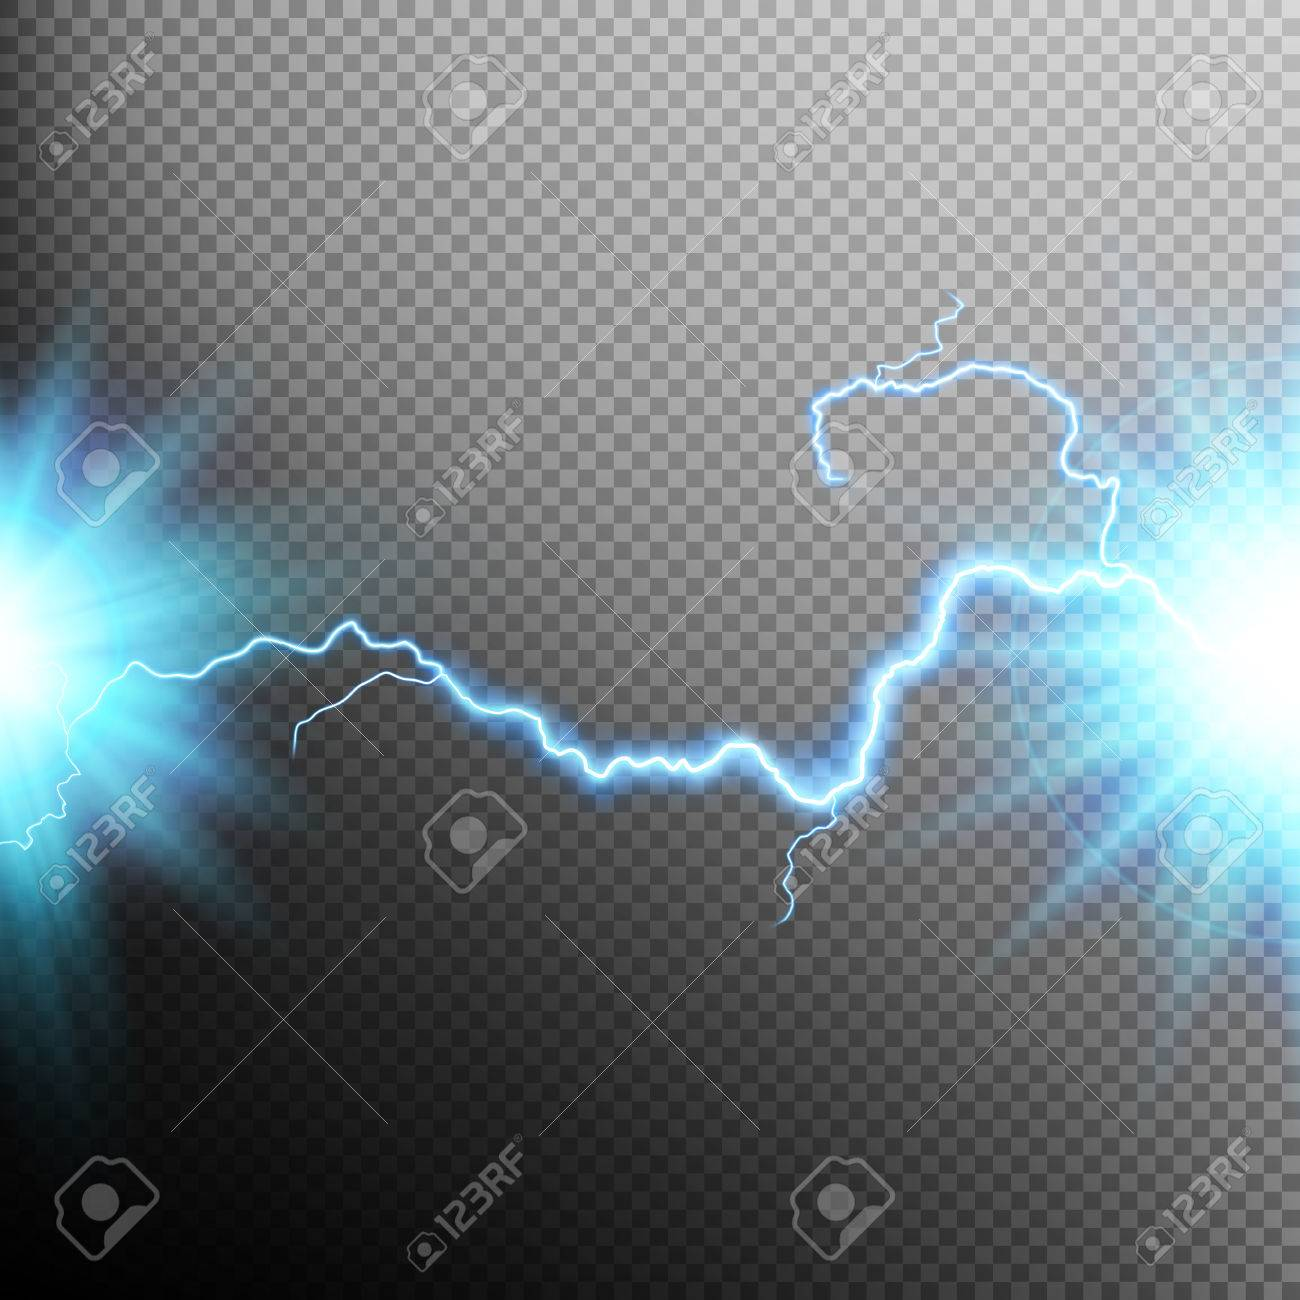 Electrical discharge. Lightning. Light effect. EPS 10 vector file included - 56473898